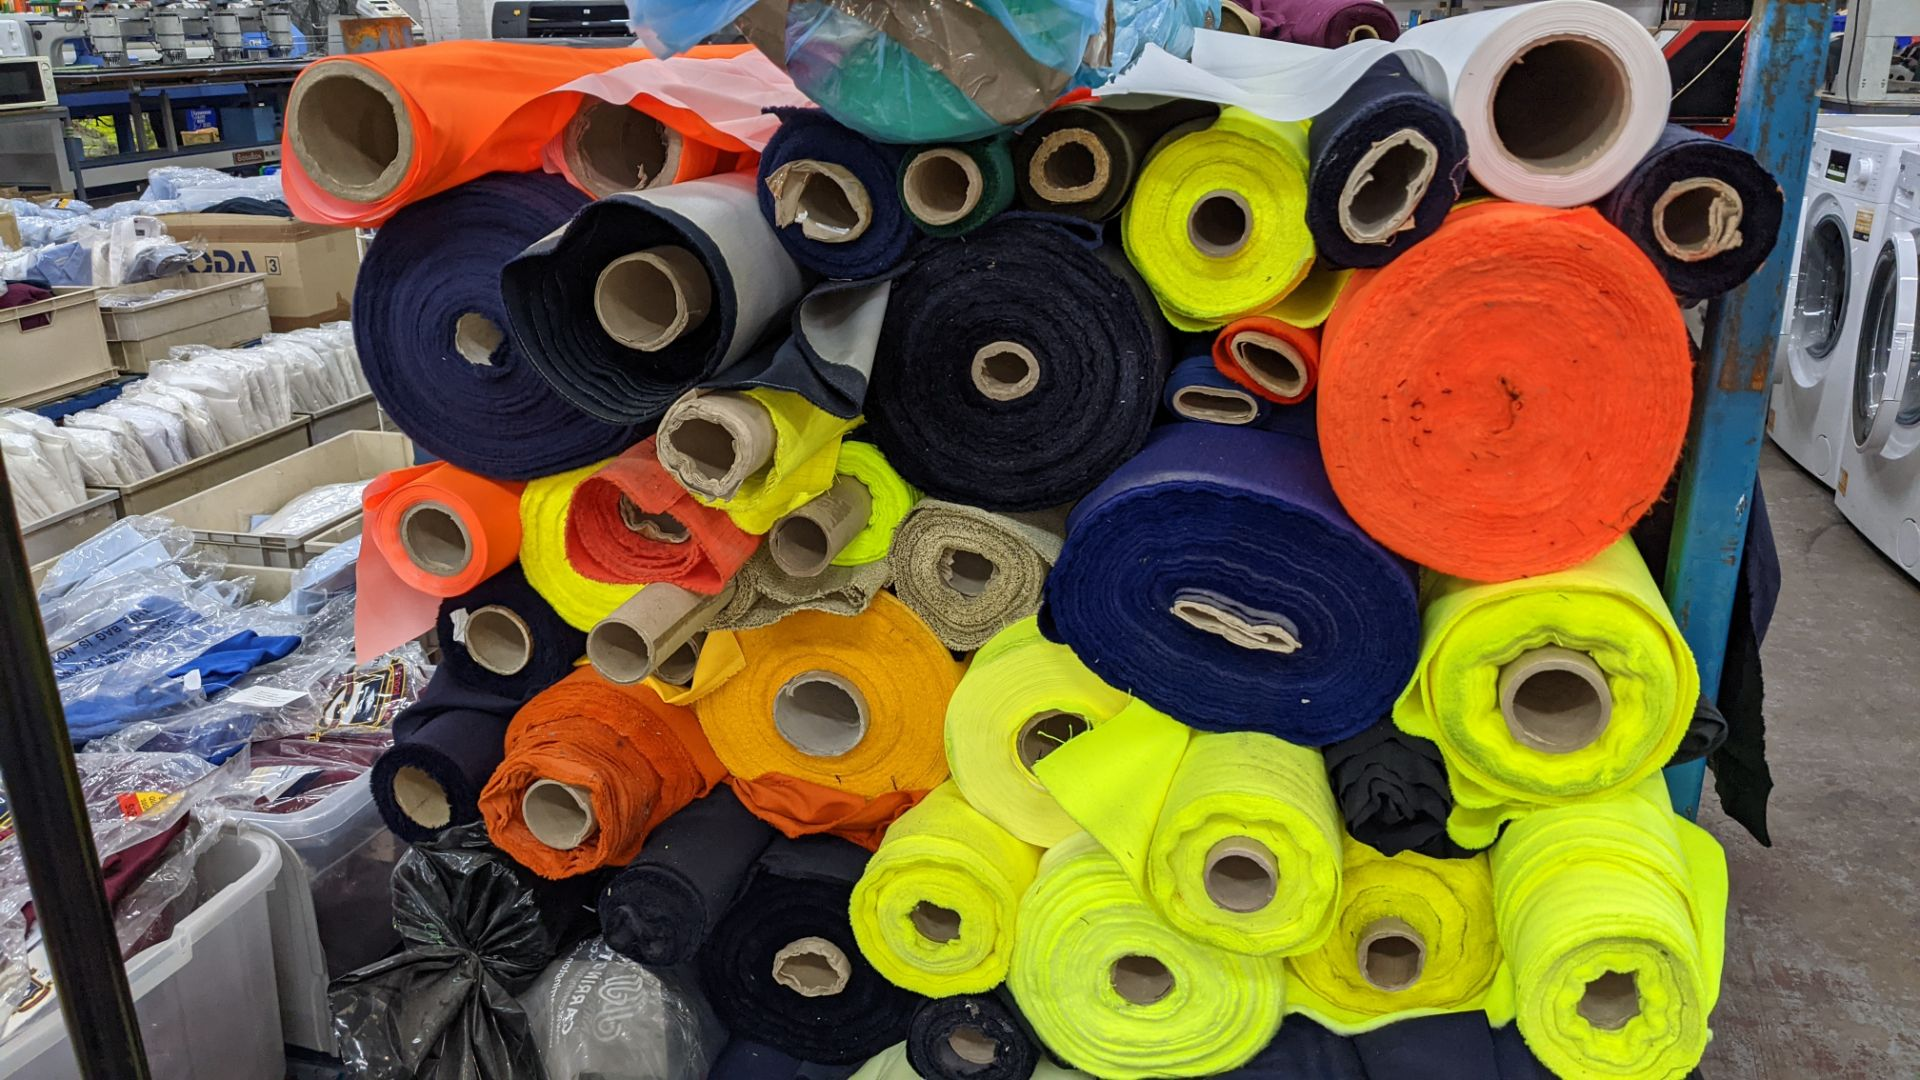 The contents of a large stillage of fabric including quantity of high visibility cloth. Please note - Image 5 of 10